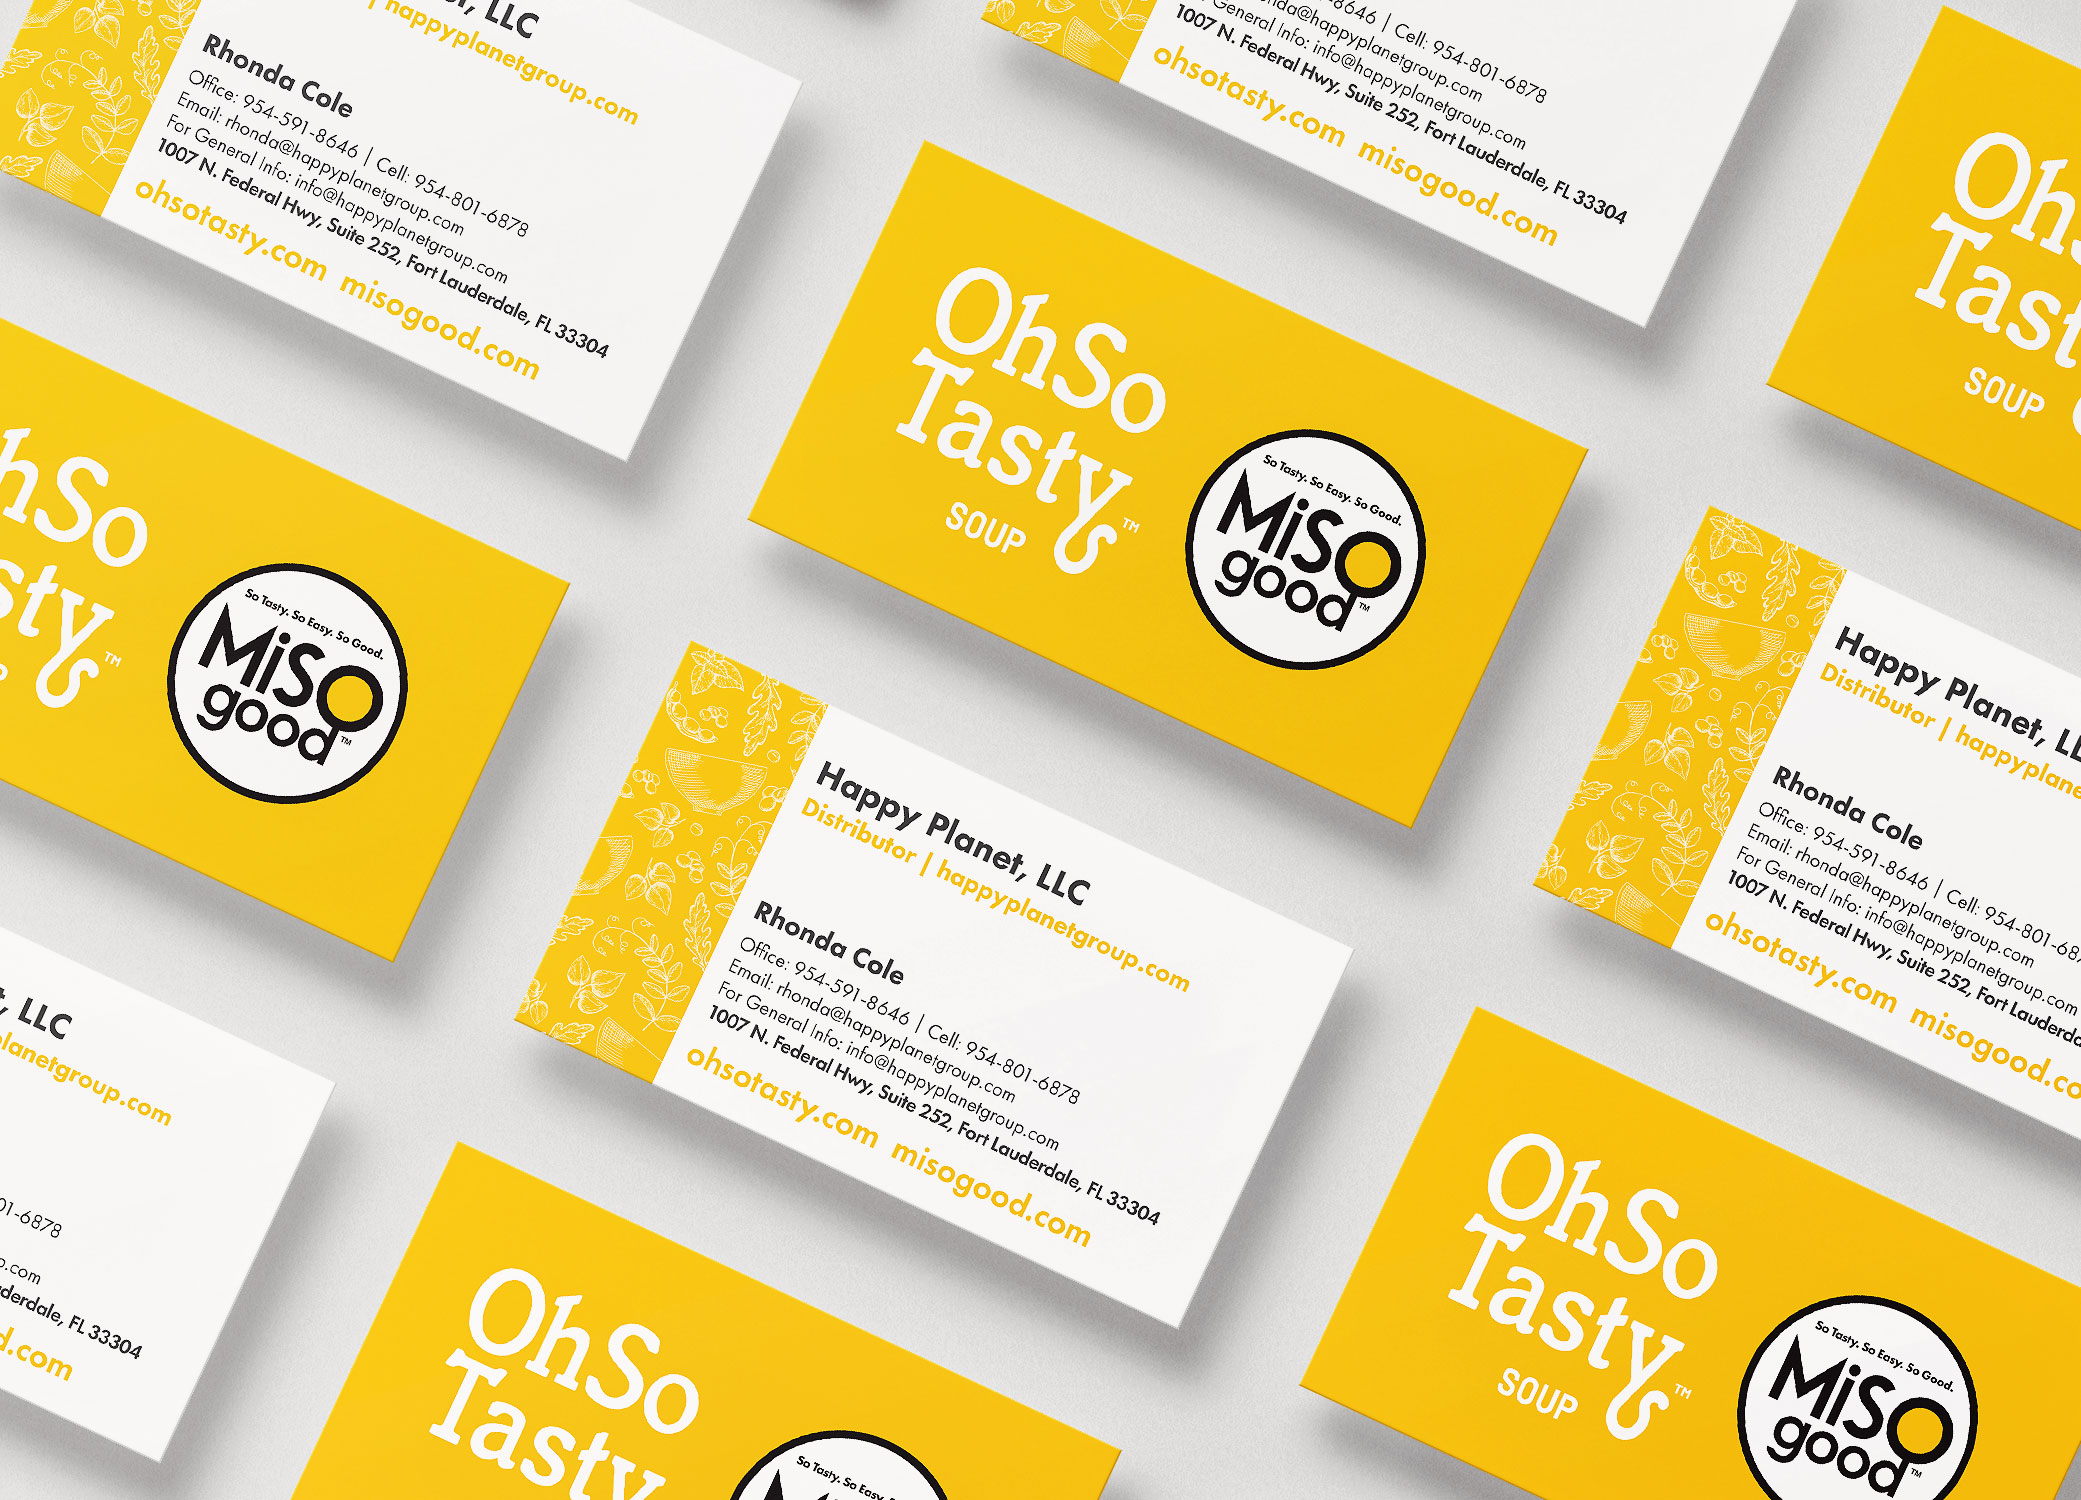 MiSOgood yellow and white business cards arranged in diagonal rows showing front and back of the card design.